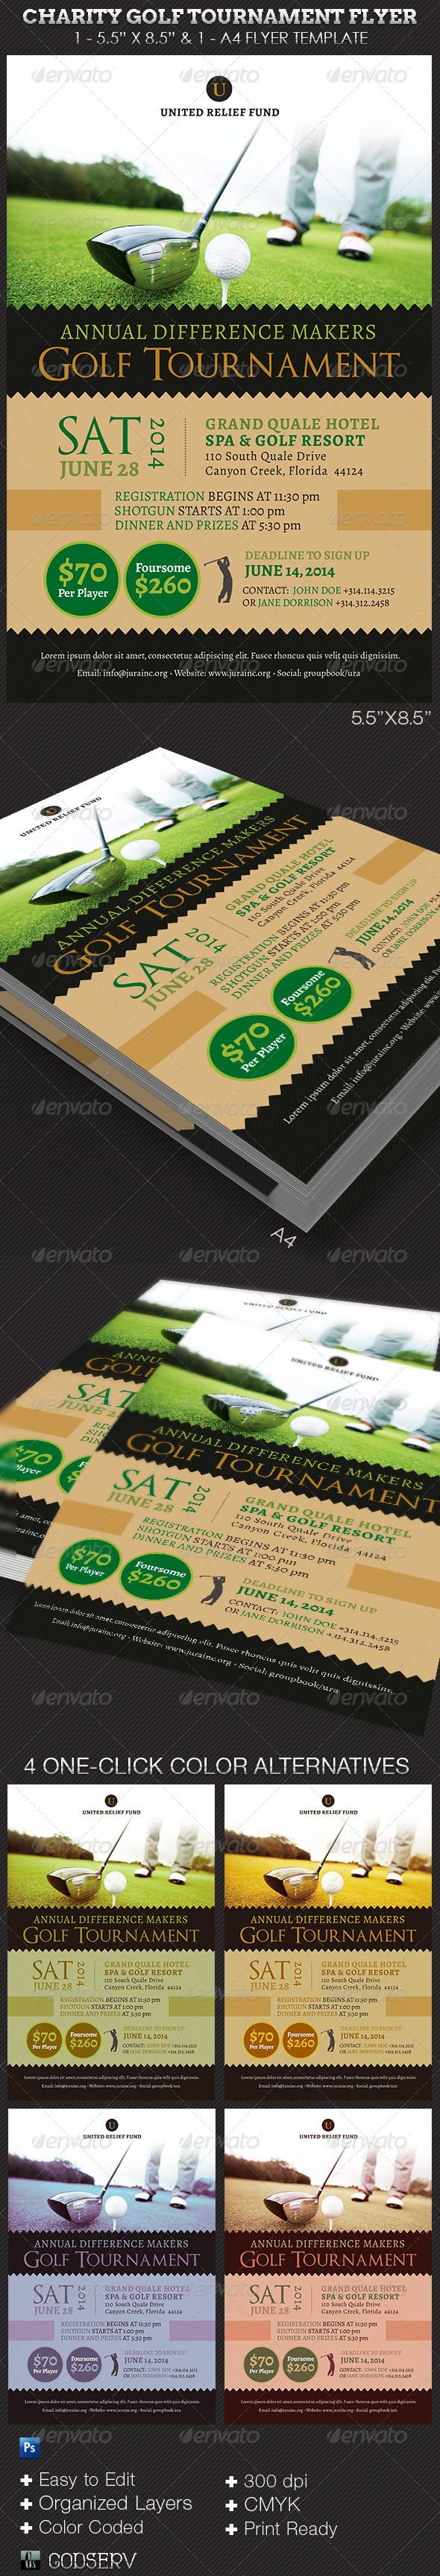 Charity Golf Tournament Flyer Template On Behance  Golf